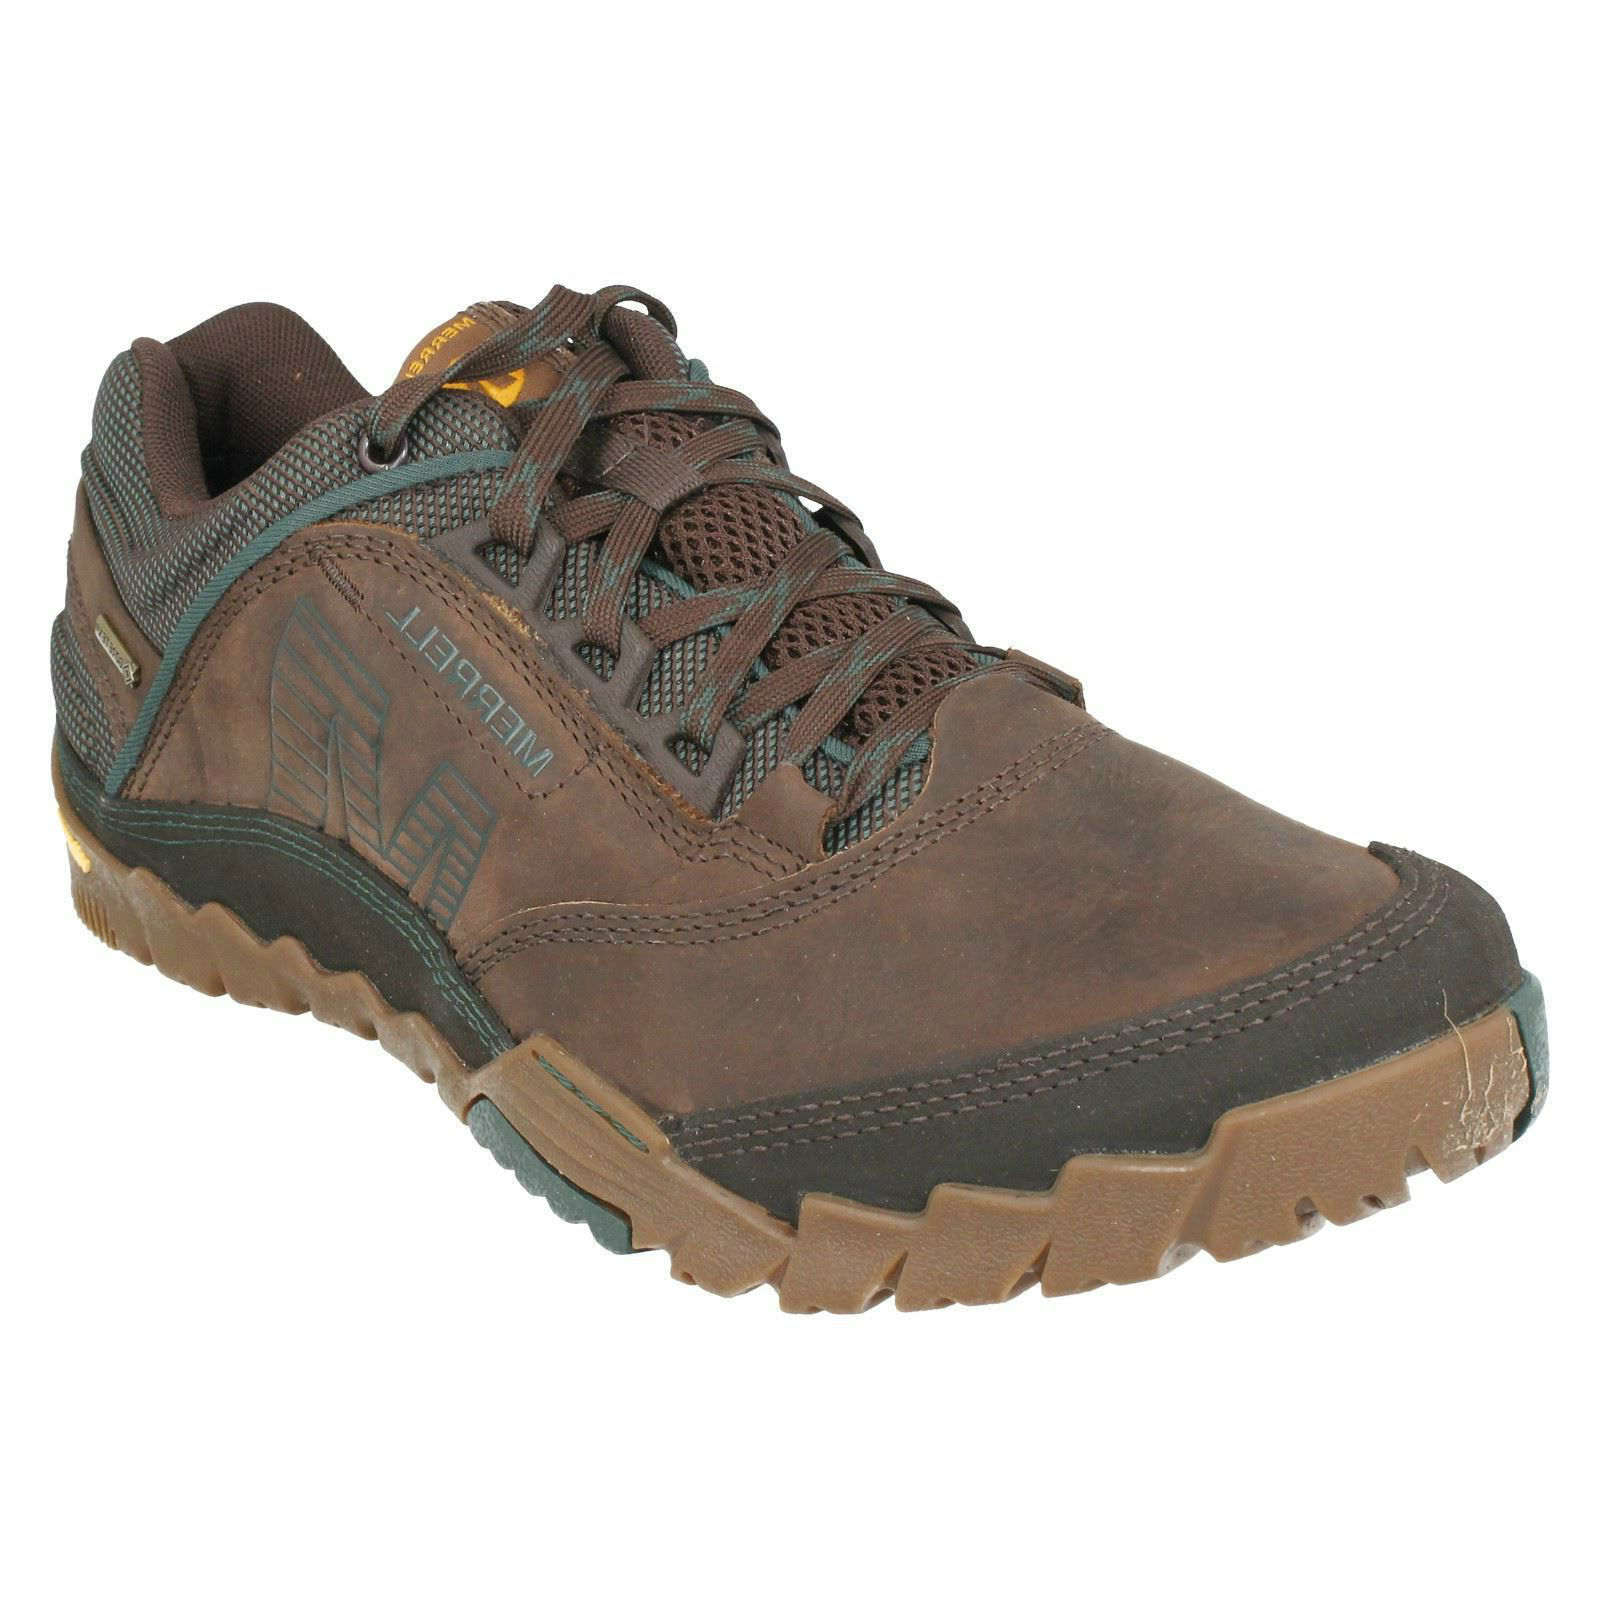 MERRELL Herren ANNEX GTX J32191  Herren MERRELL LACE UP LEATHER WATERPROOF GORE-TEX TRAINERS Schuhe d50ec0